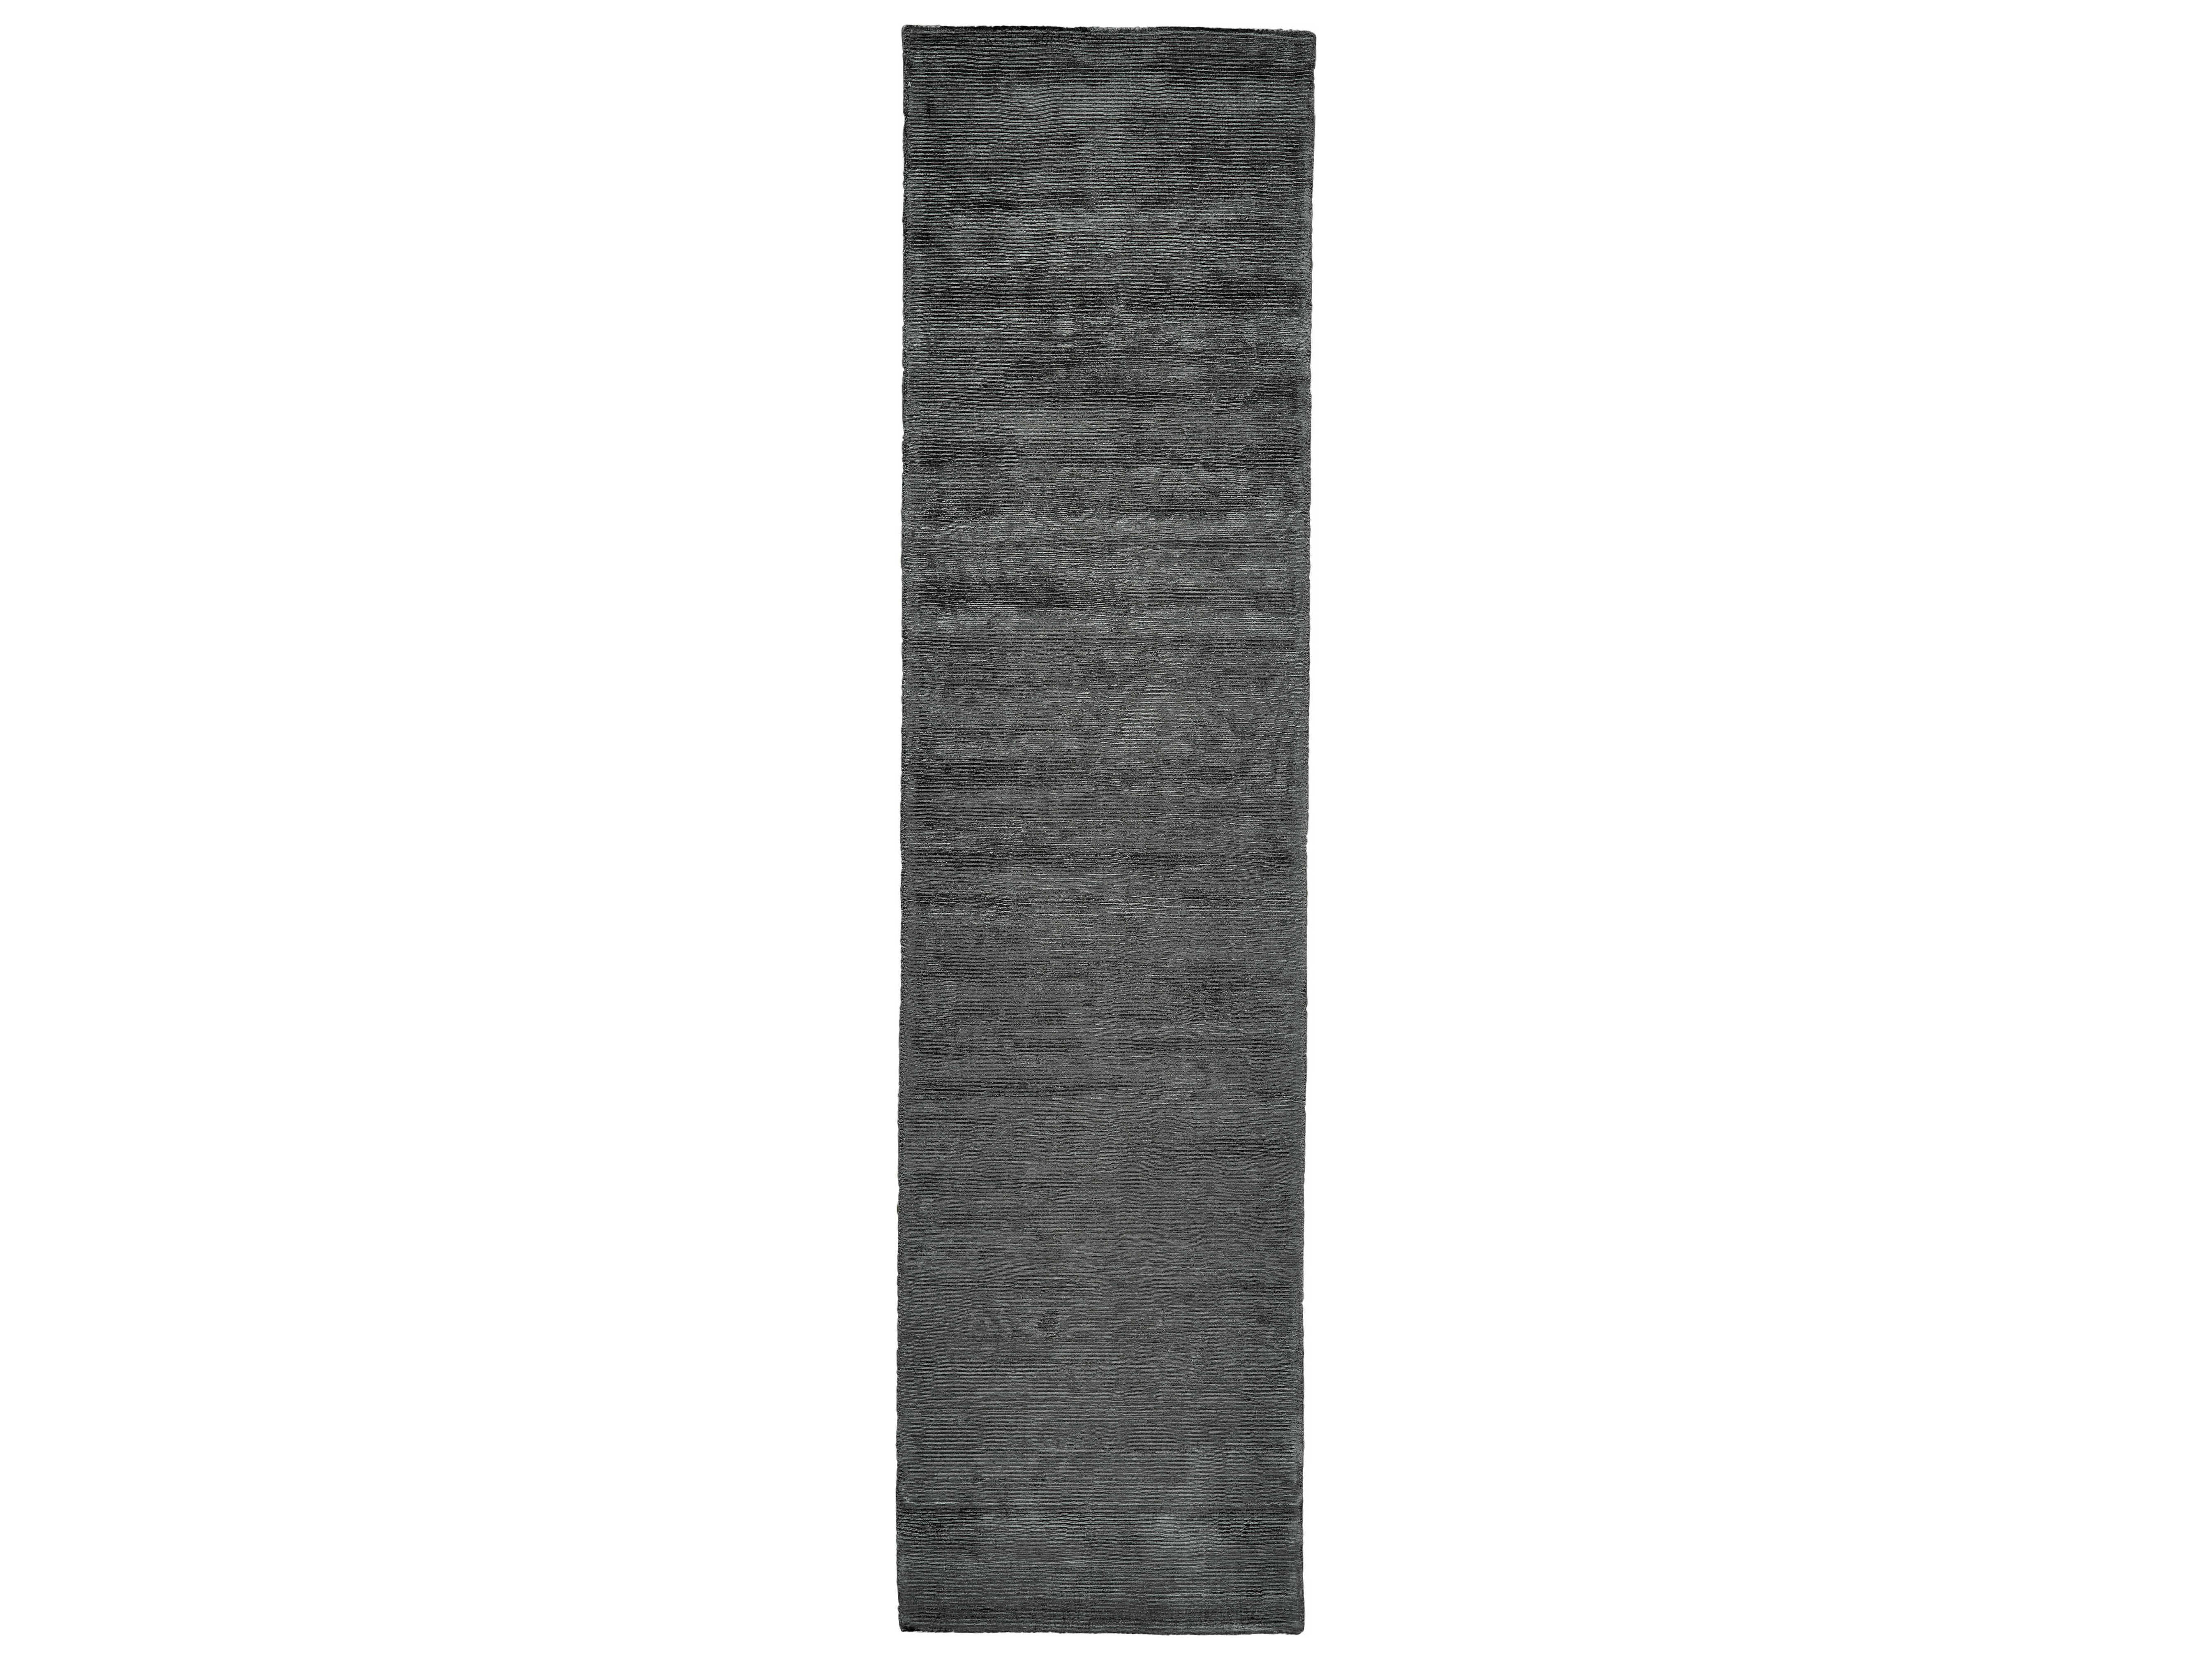 Feizy Rugs Batisse Charcoal 2 6 X 10 Runner Rug 8717f